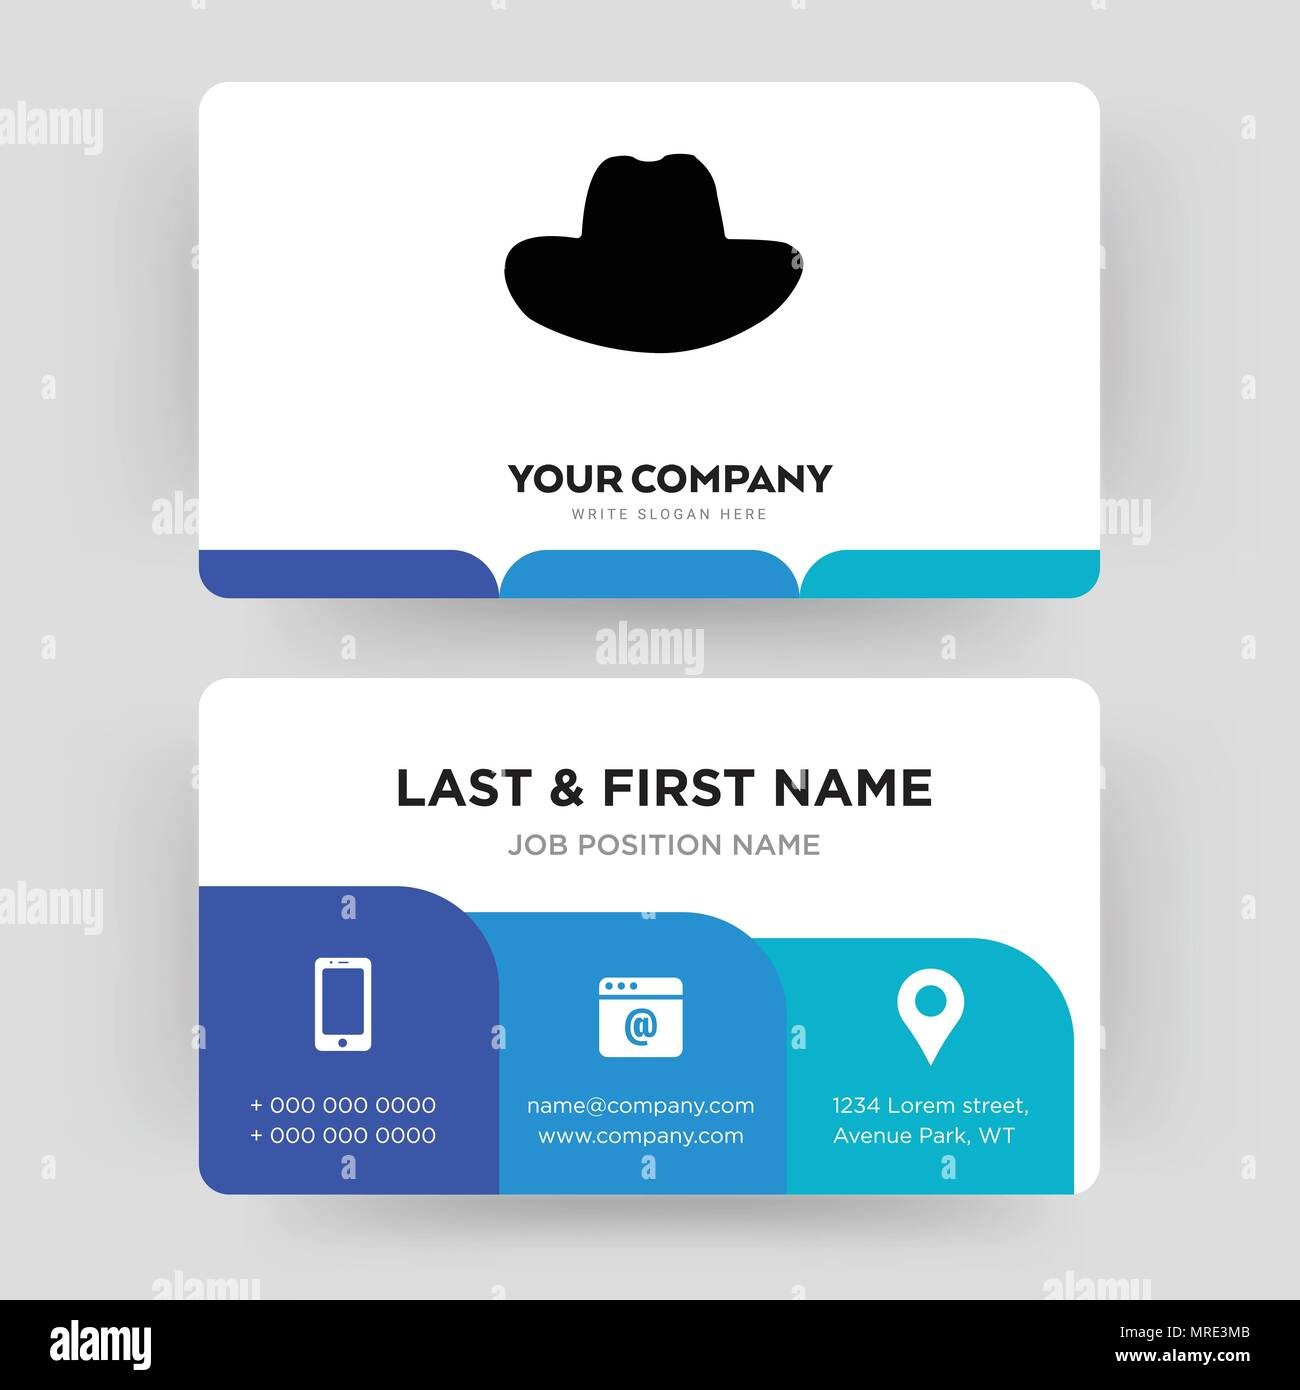 Cowboy hat business card design template visiting for your company cowboy hat business card design template visiting for your company modern creative and clean identity card vector reheart Image collections